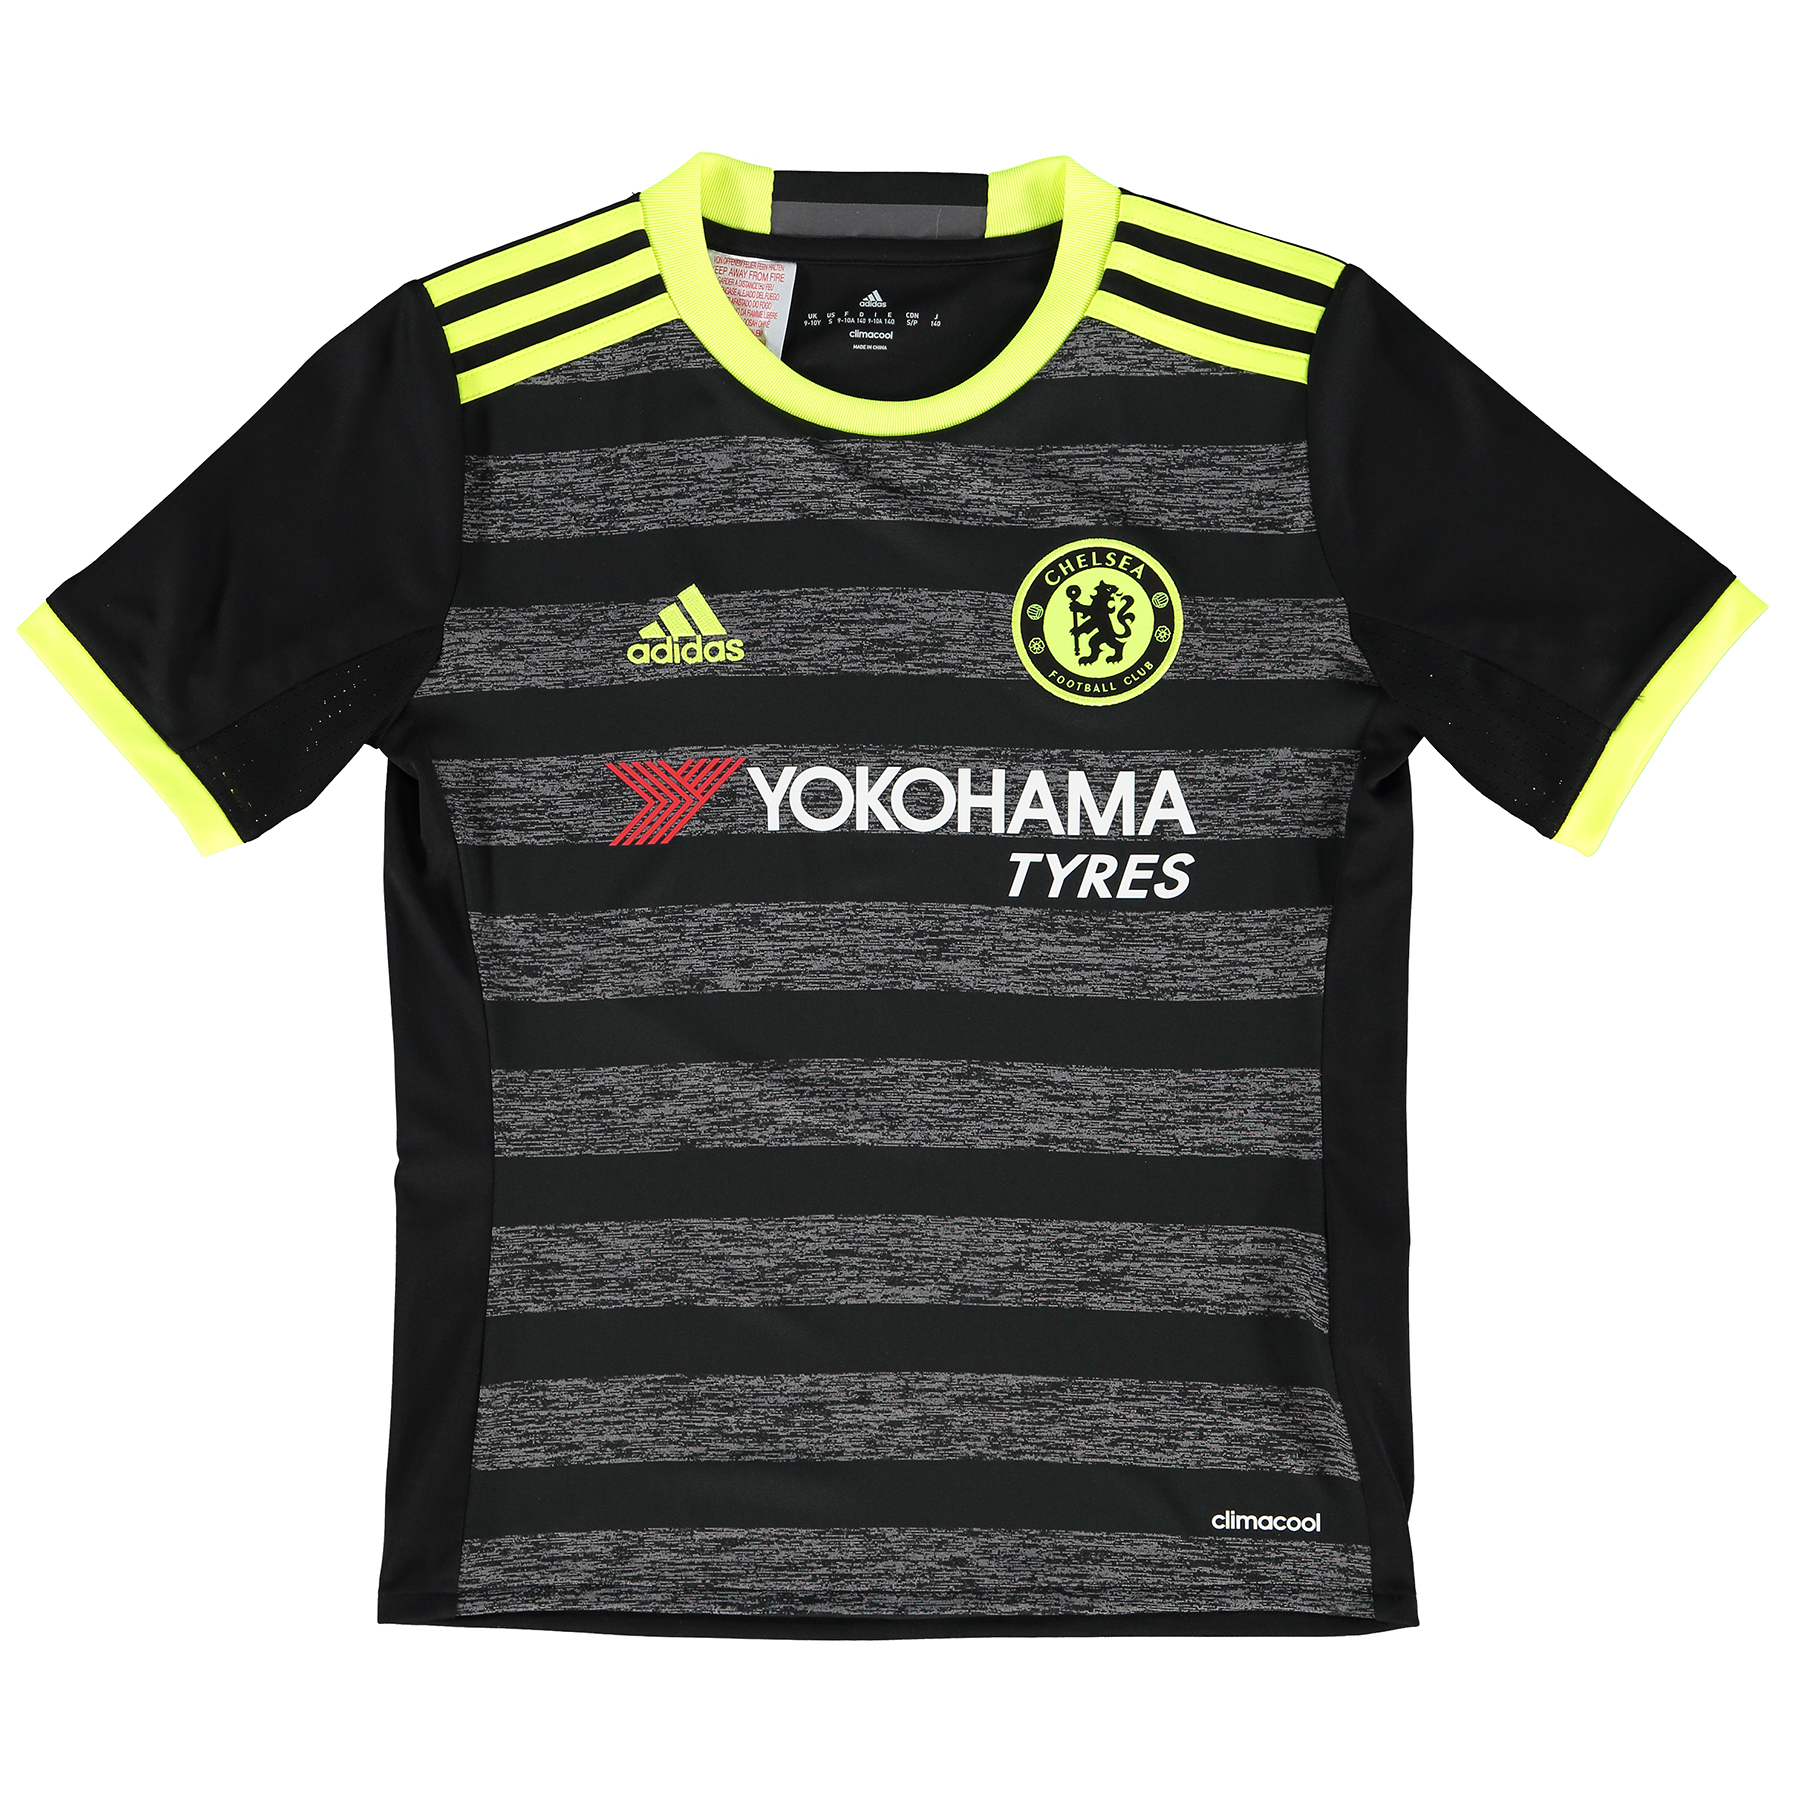 Chelsea Away Shirt 16-17 - Kids   Embrace an exciting fresh chapter in Chelsea Football Club's colourful history with the Chelsea Away Shirt 16-17 - Kids.   This official Chelsea kids' change shirt is marked by slim black and moderately thicker grey frontal hoops; the latter of which presenting a cotton-style image that appears to visually possess a television static effect.   Providing this cutting-edge jersey with high-impact contrast, the collar, sleeve trim and shoulder 3 Stripes are all enhanced by solar yellow accents, with the same colour continued through the brand motif, club crest and CHELSEA FC back neck wording.   Features: • Crewneck collar • climacool® technology • Mesh ventilation inserts • Mélange fabric • Woven badge on left chest • Chelsea FC sign off on collar • Part of sustainable product program • 100% recycled polyester interloc